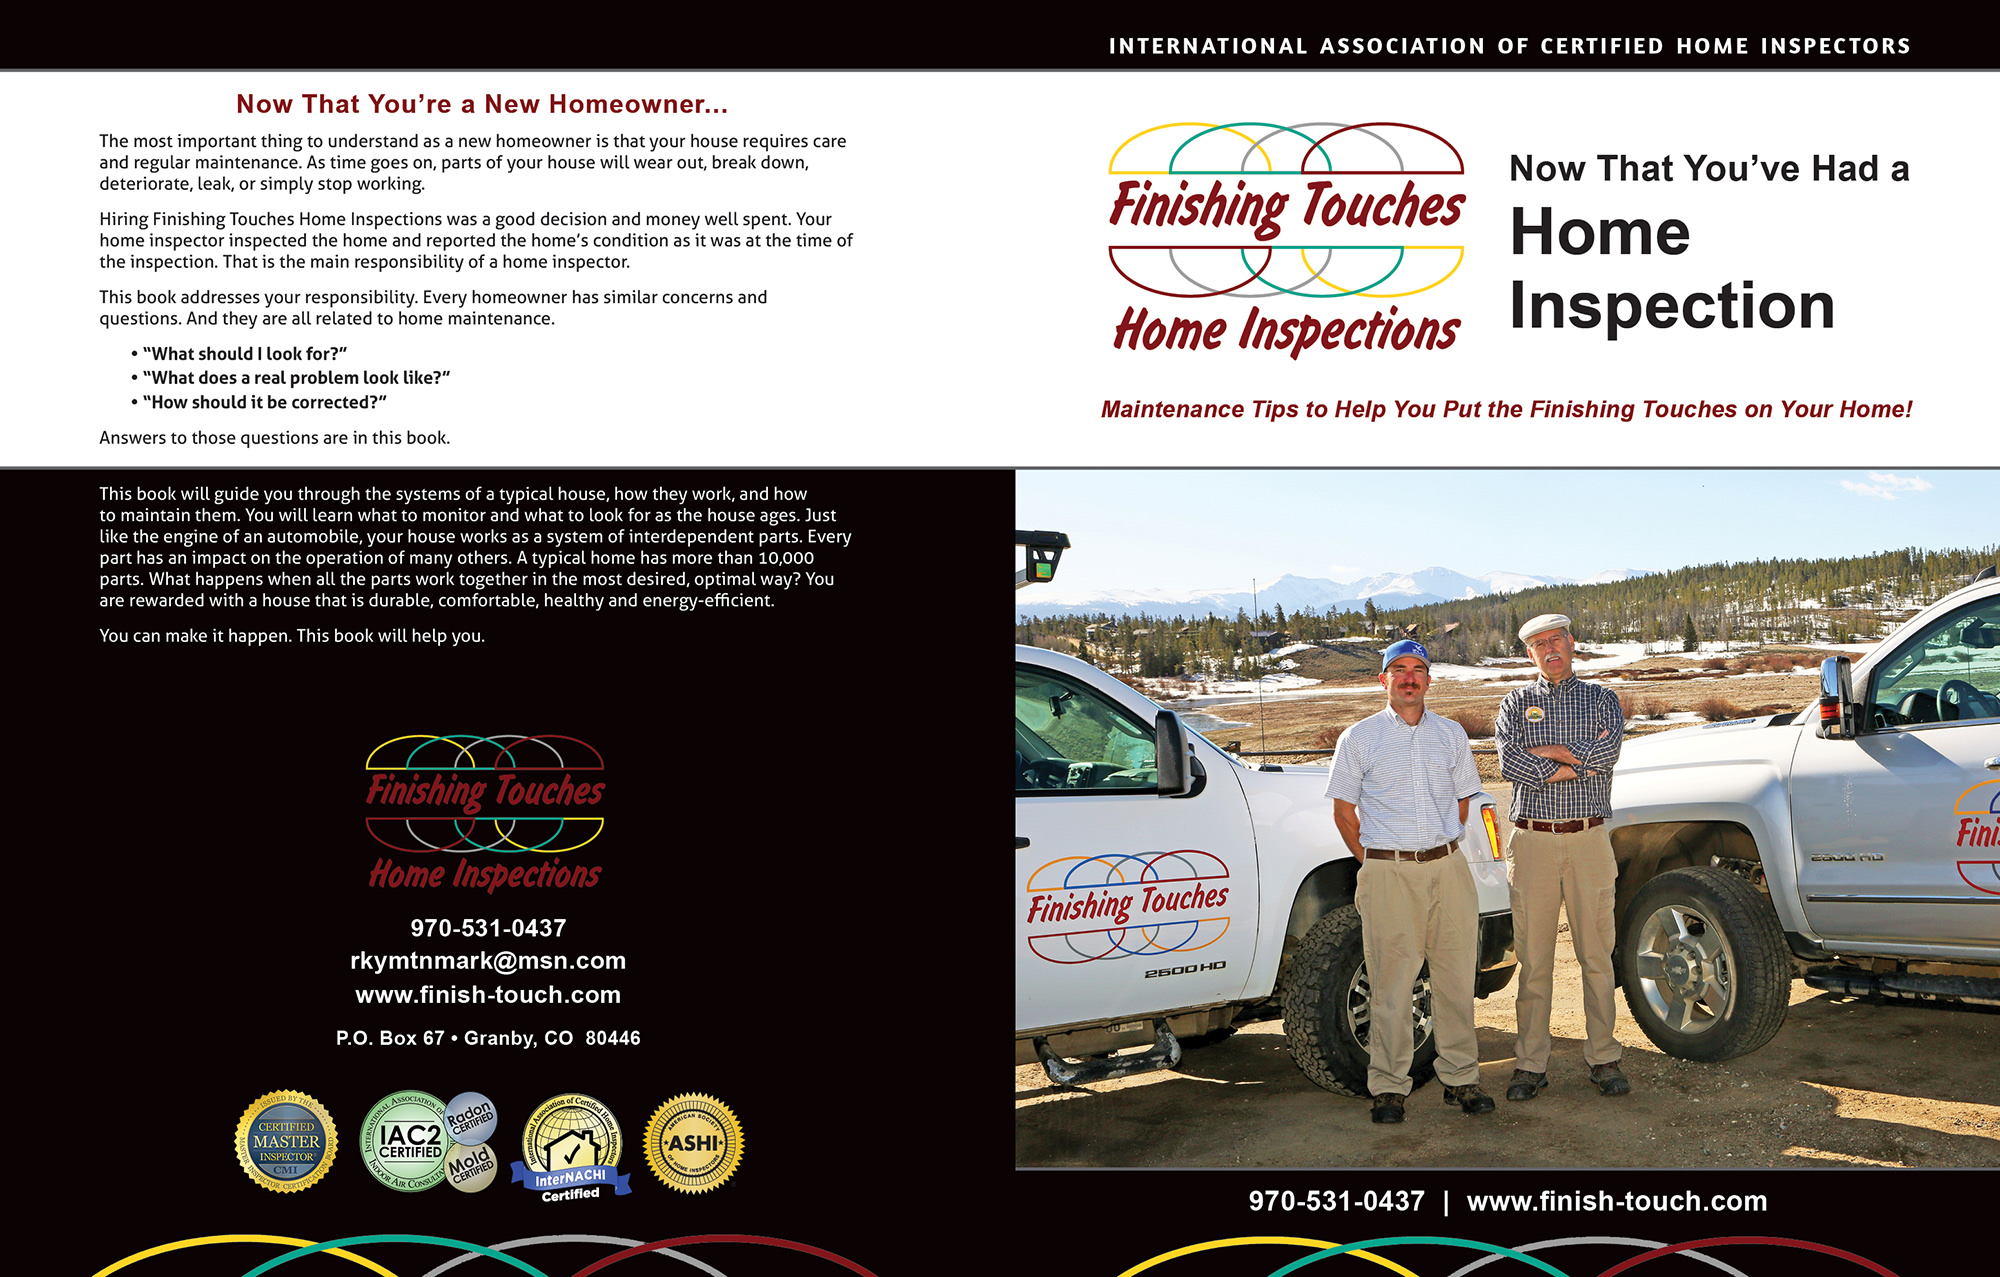 Custom Home Maintenance Book for Finishing Touches Home Inspections.